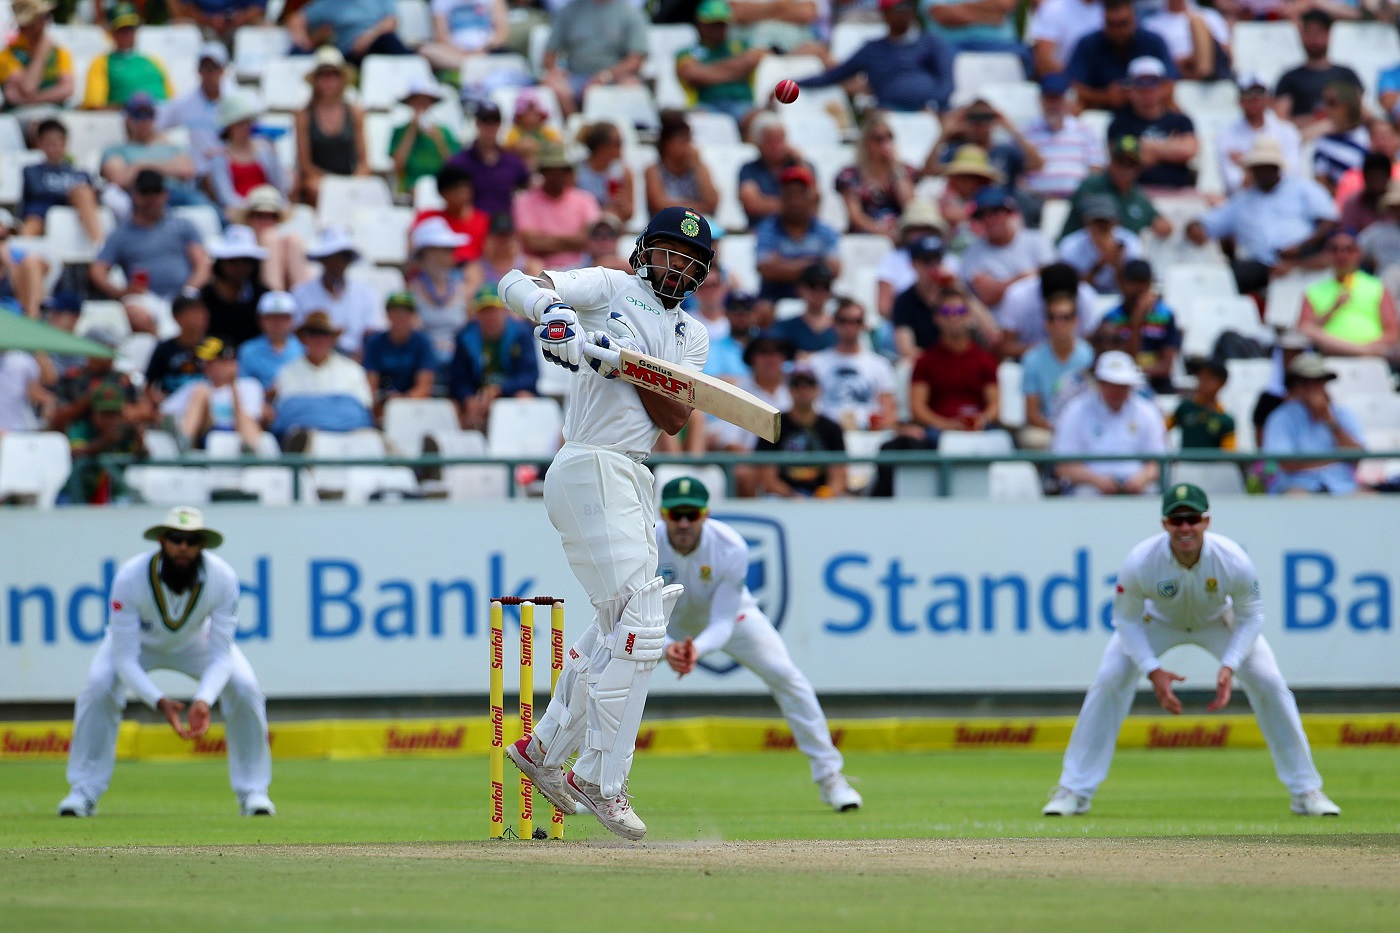 India vs South Africa 1st Test Day 4 Highlights